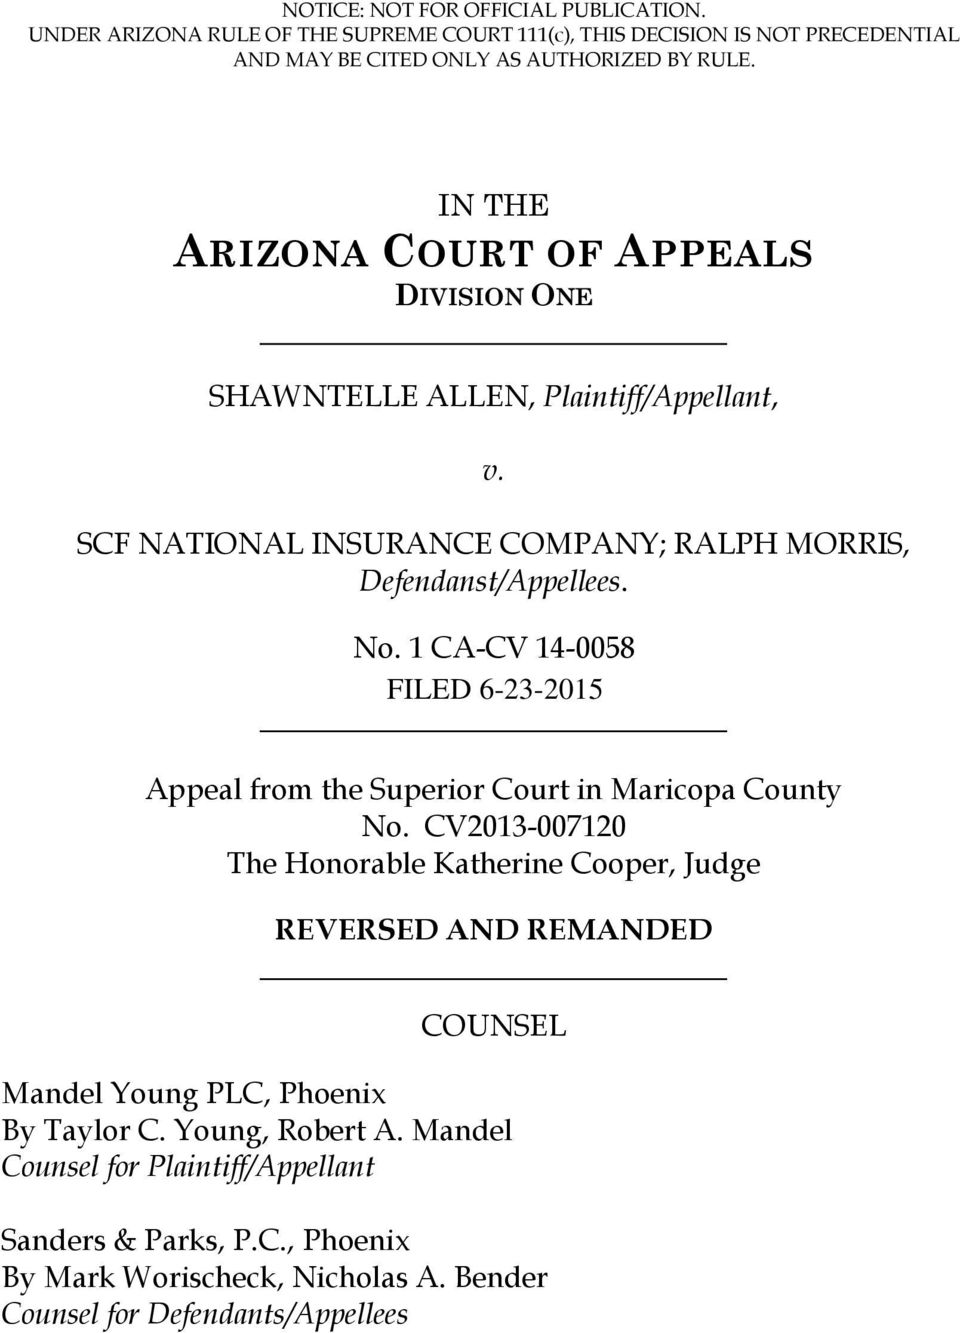 1 CA-CV 14-0058 Appeal from the Superior Court in Maricopa County No.